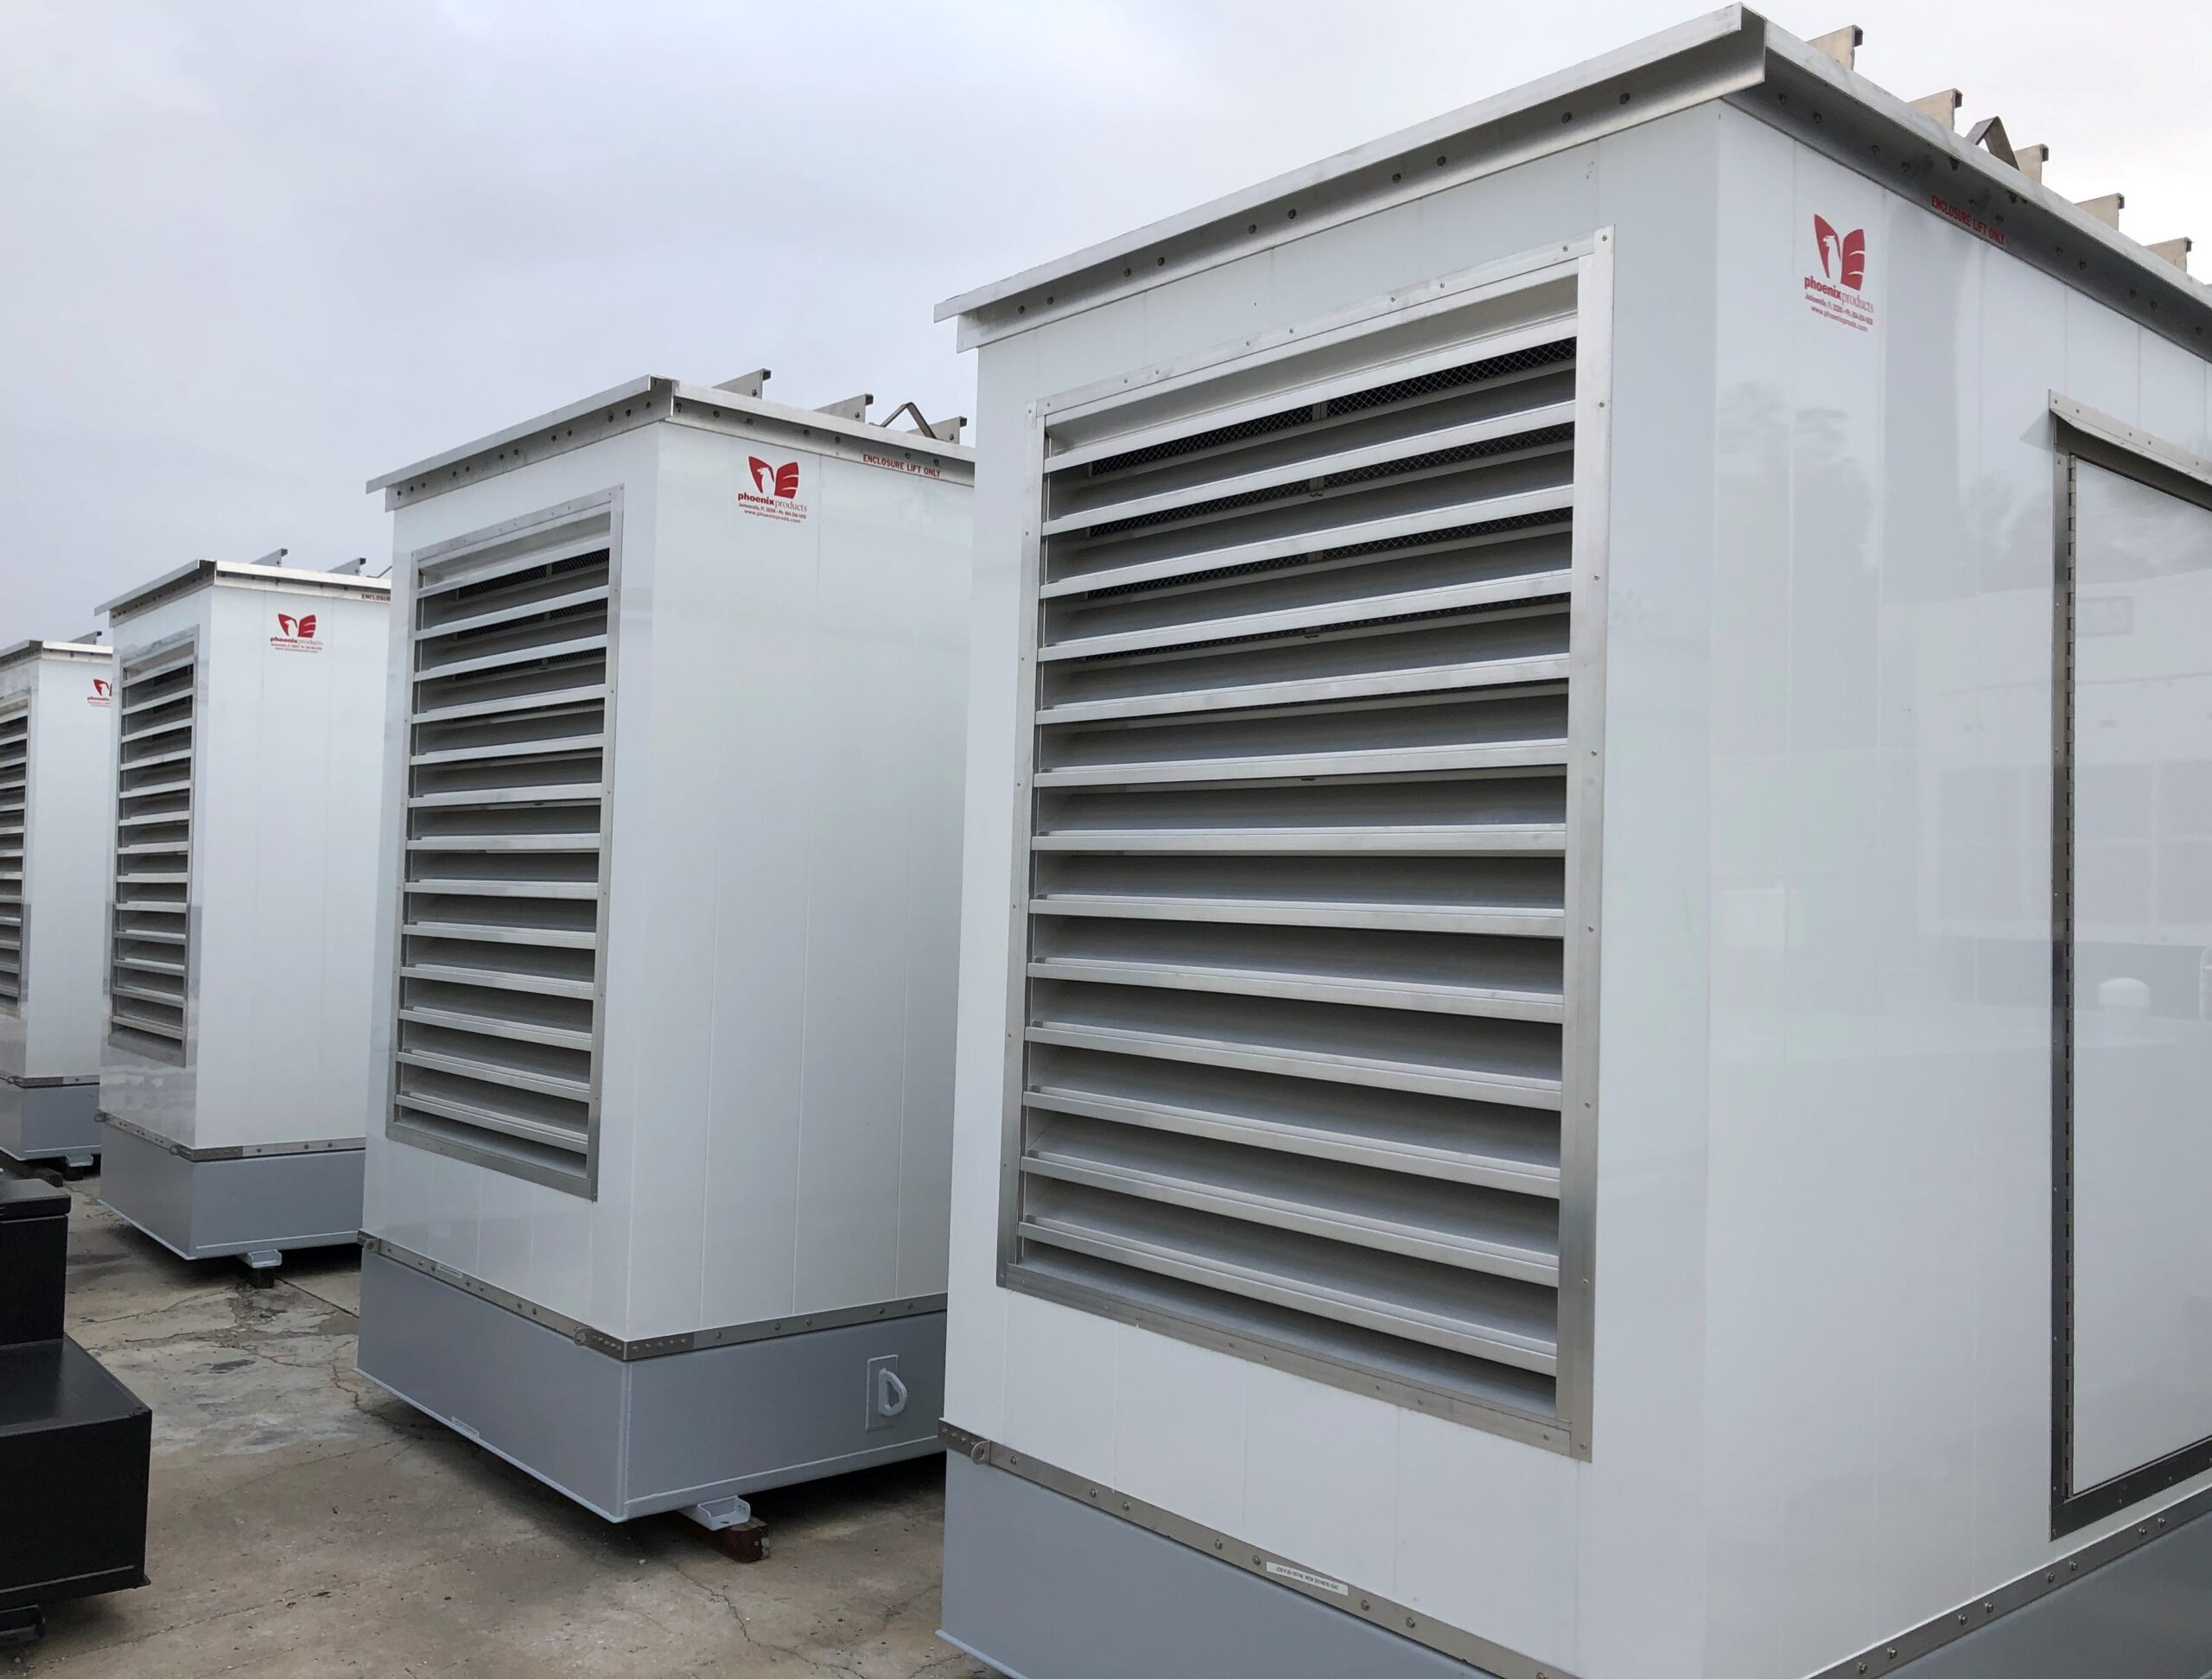 Custom-Aluminum-Generator-Enclosures-With-UL-Sub-Base-Fuel-Tanks